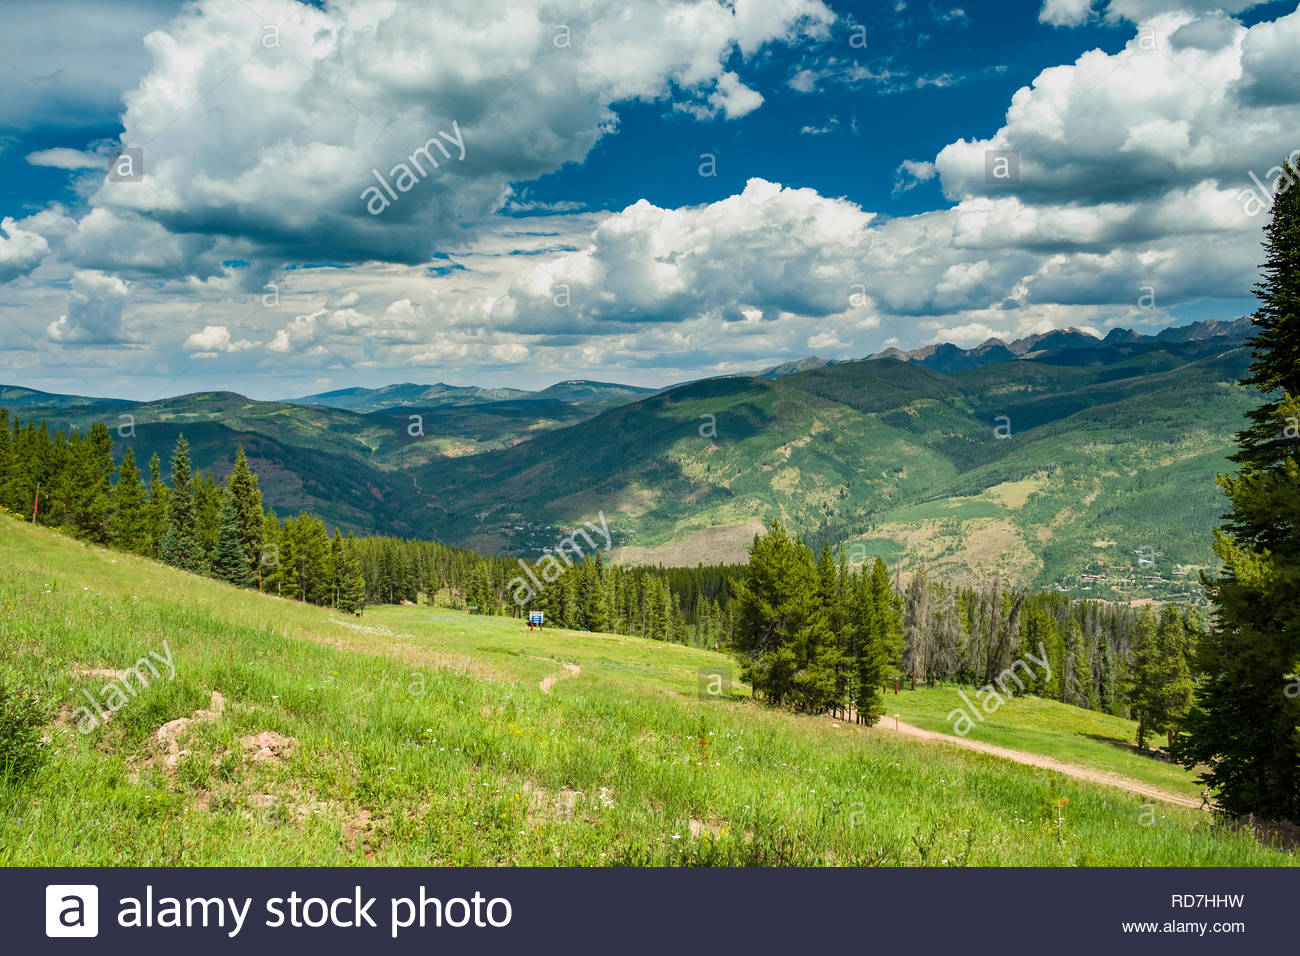 View of Vail Valley from Vail Mountain, Vail, Eagle County, Colorado, USA - Stock Image